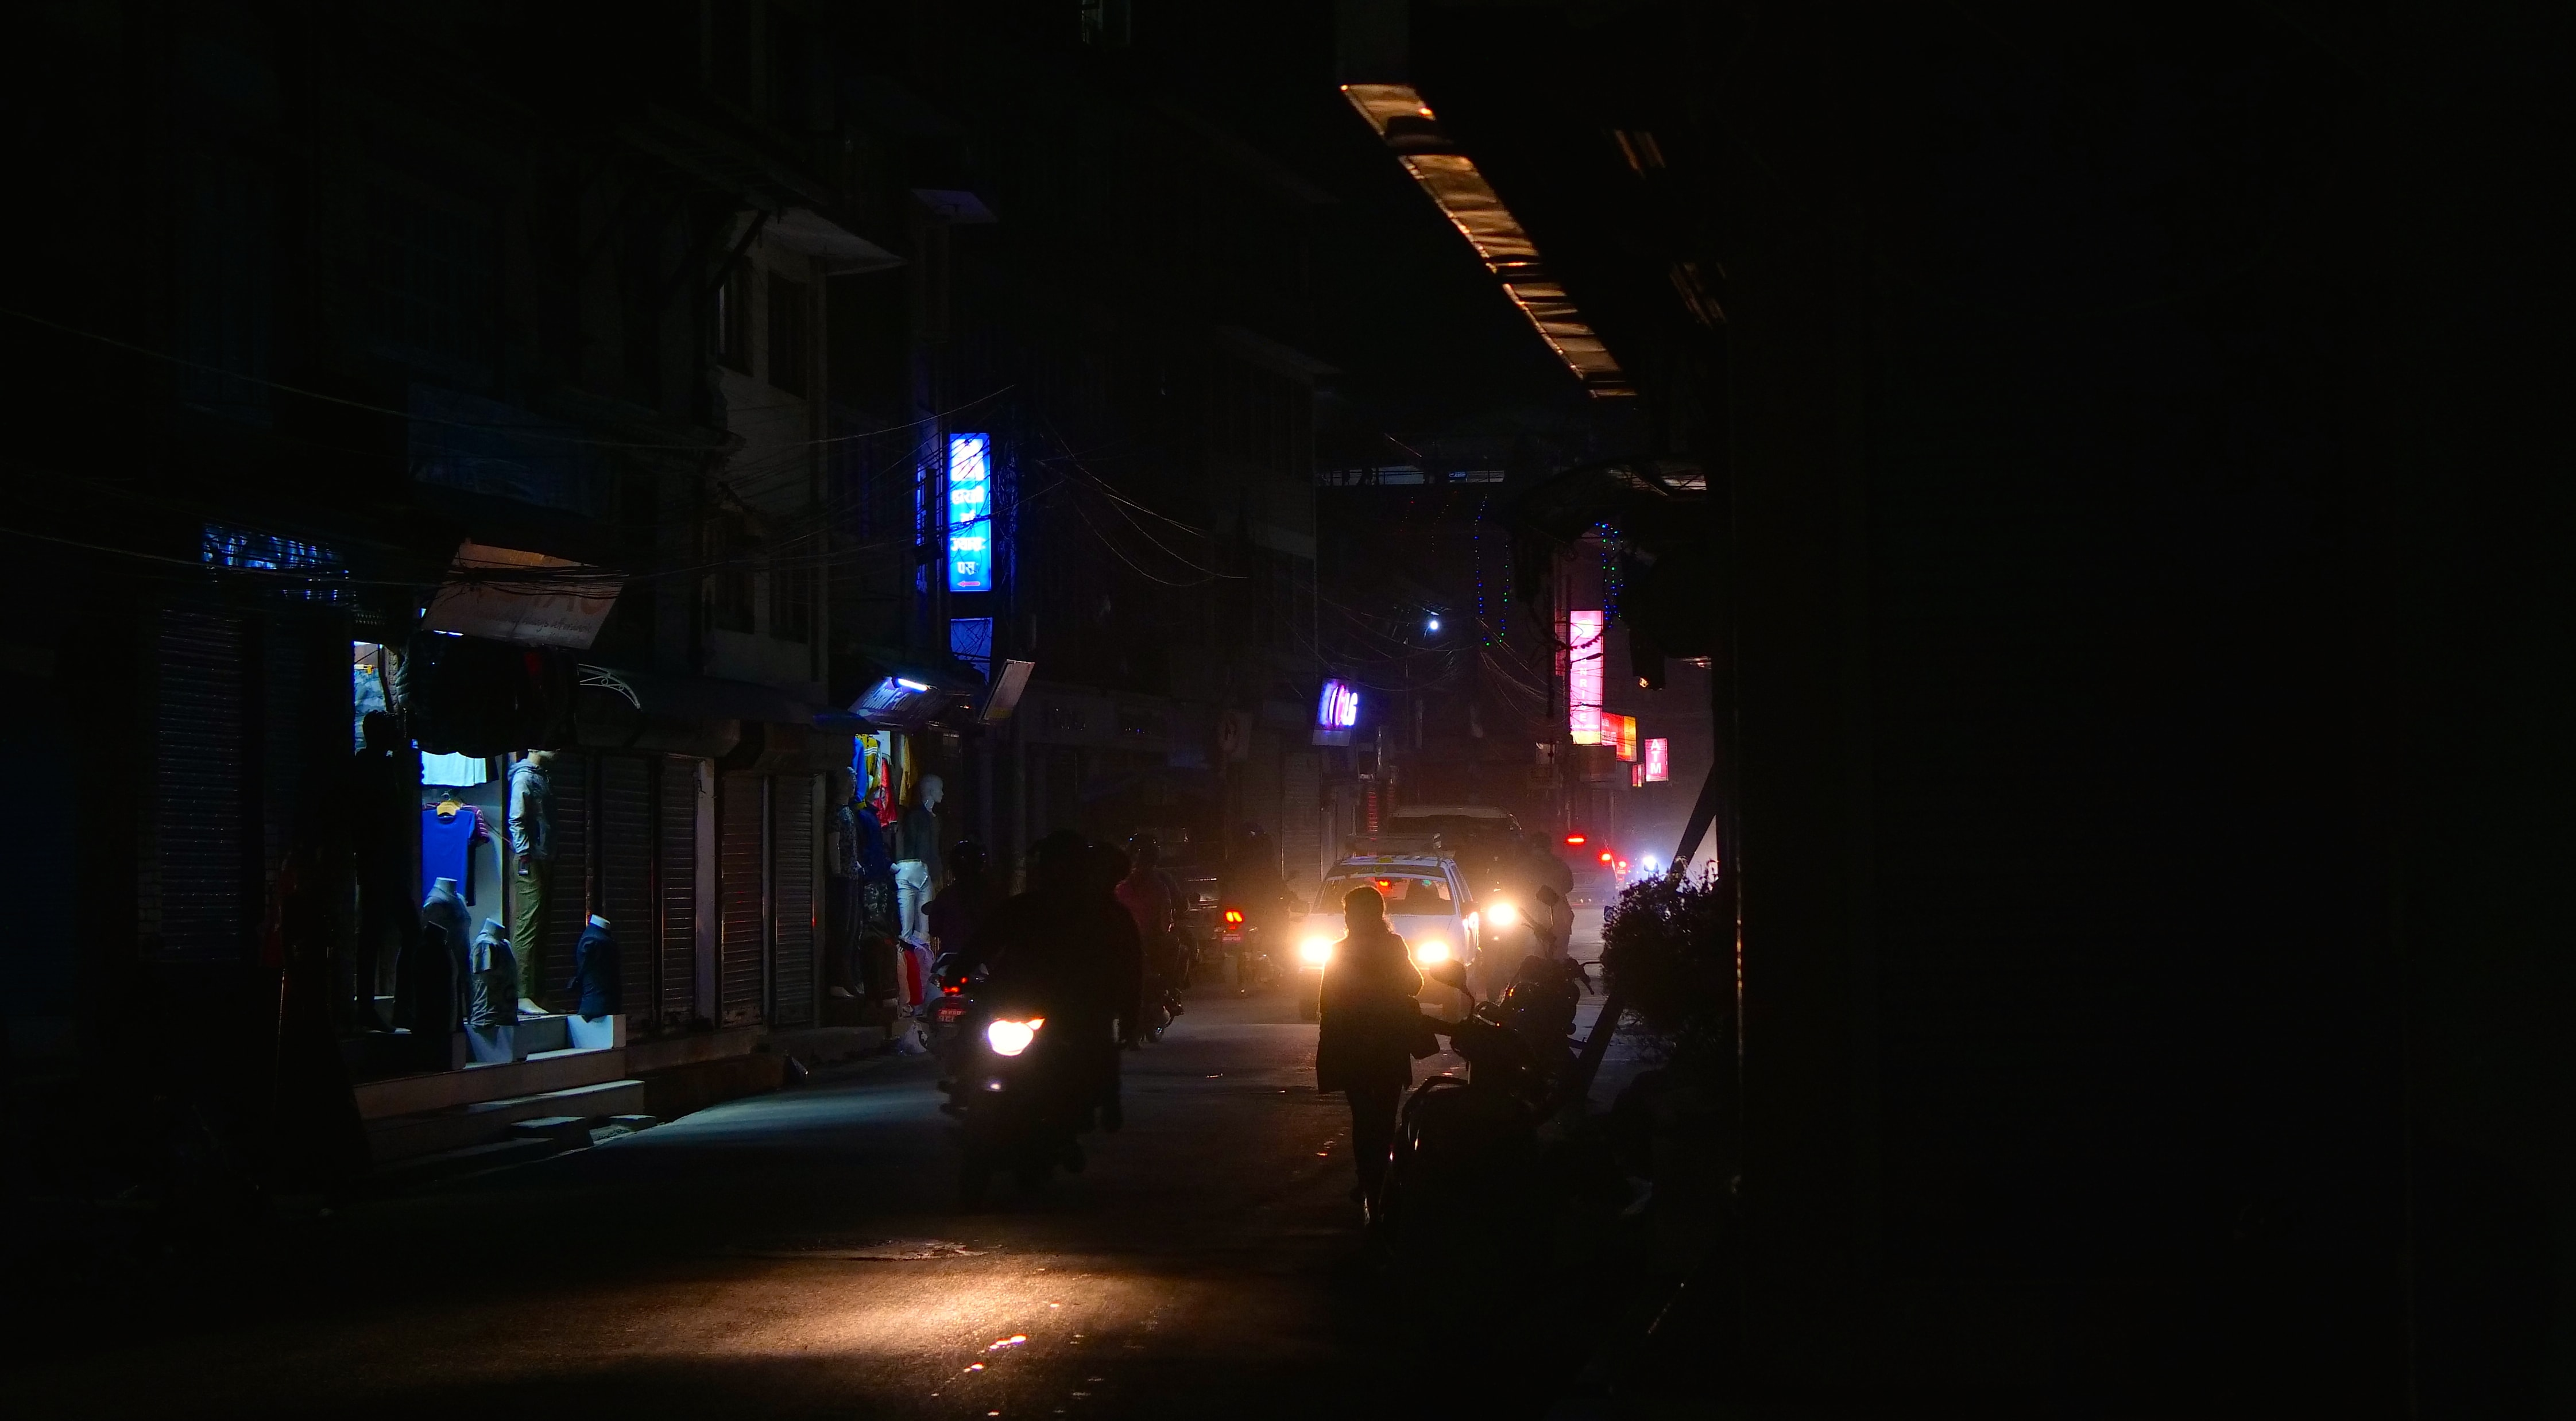 Field Recording nepal himalaya David kamp studiokamp city wide night